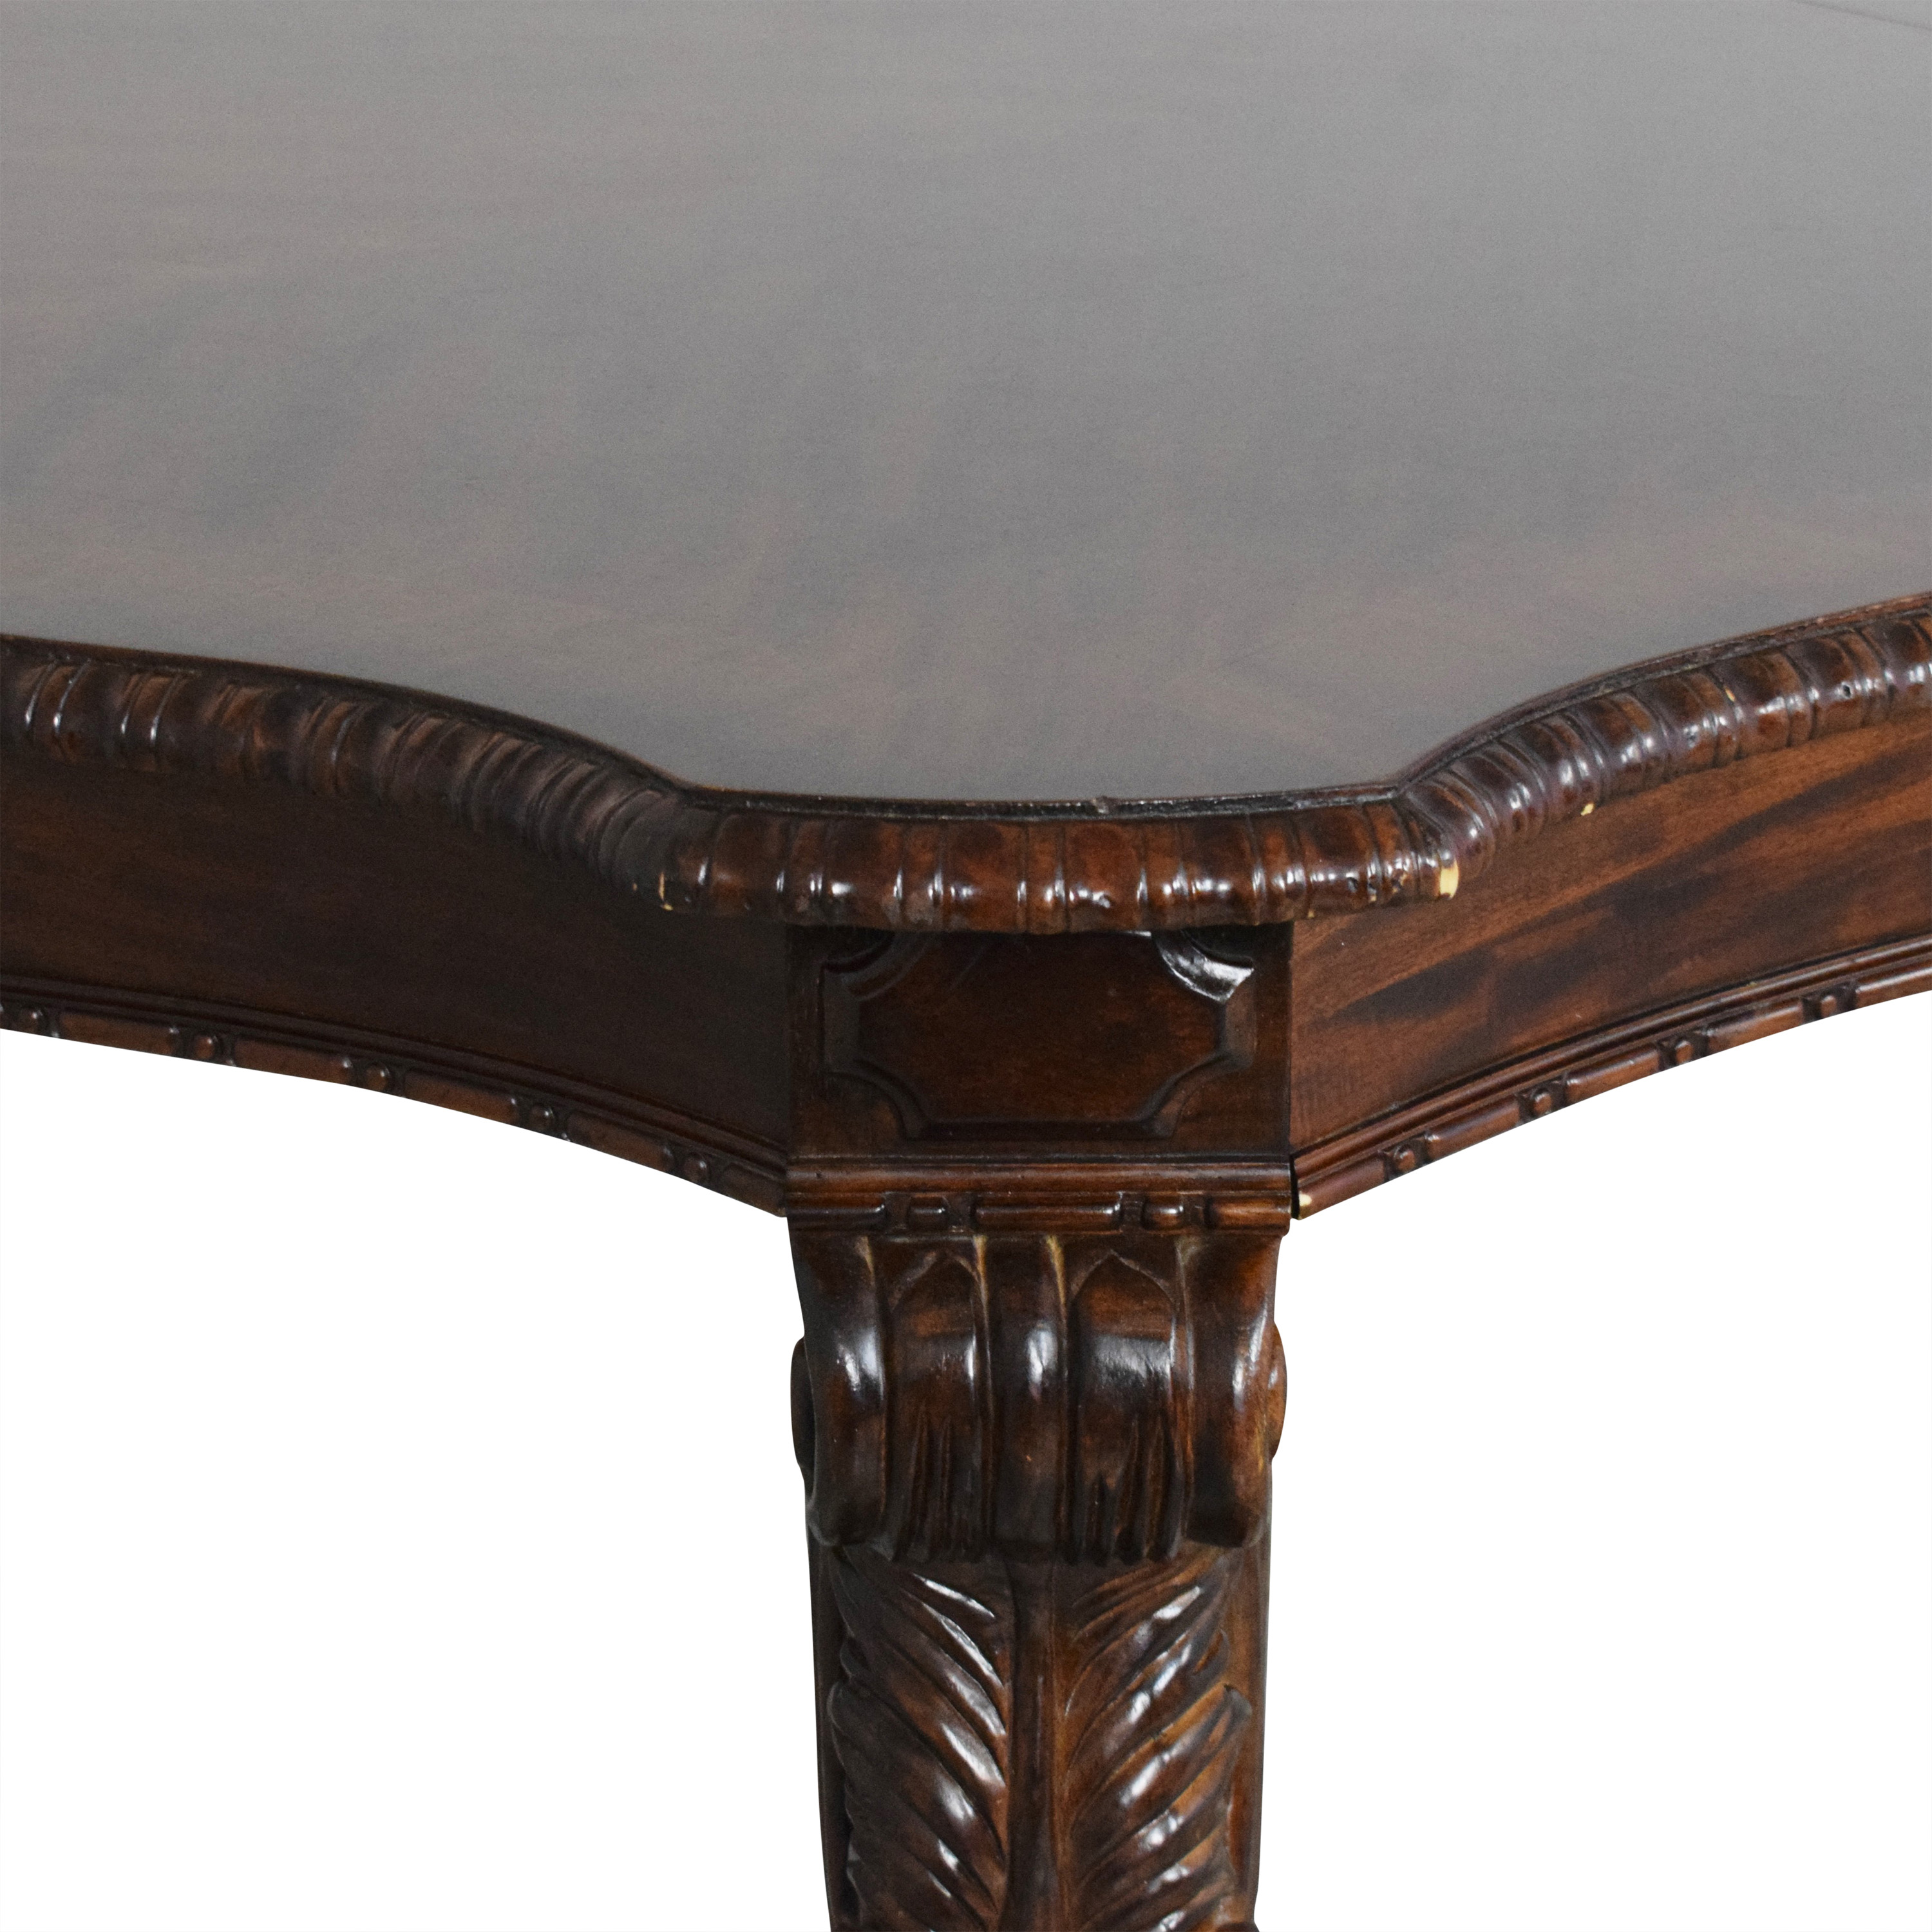 Bernhardt Bernhardt Grand Savannah Extendable Dining Table second hand